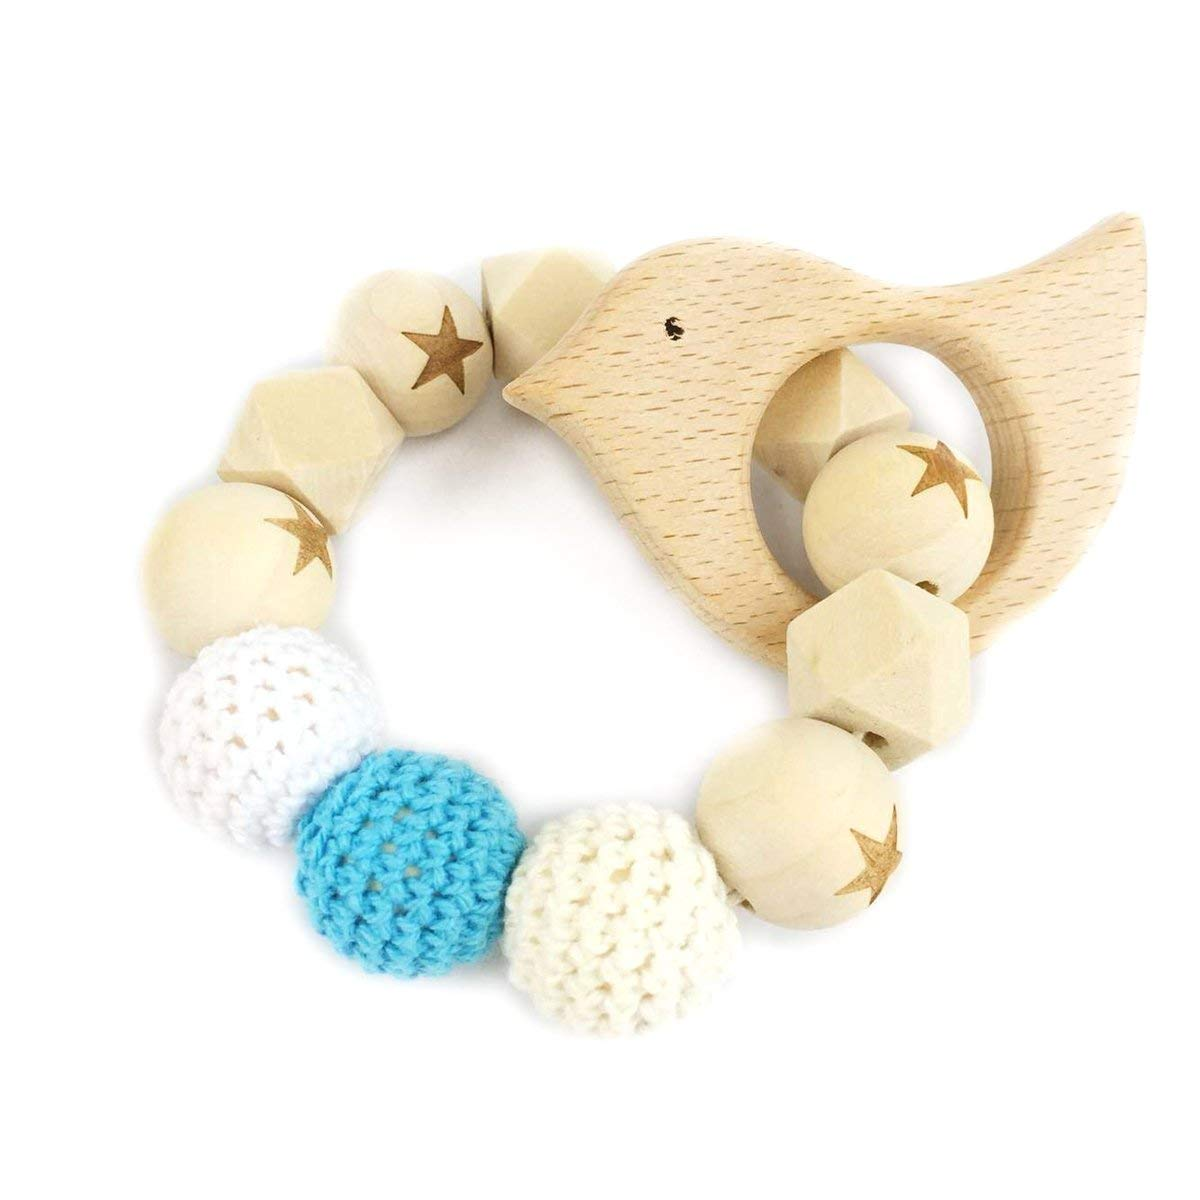 Bird Wooden Teether Chew Beads Baby Rattle Teether Nattural Raw Crochet Beads Toy Mom Bracelet Ecofriendly Baby Teething (Bird)